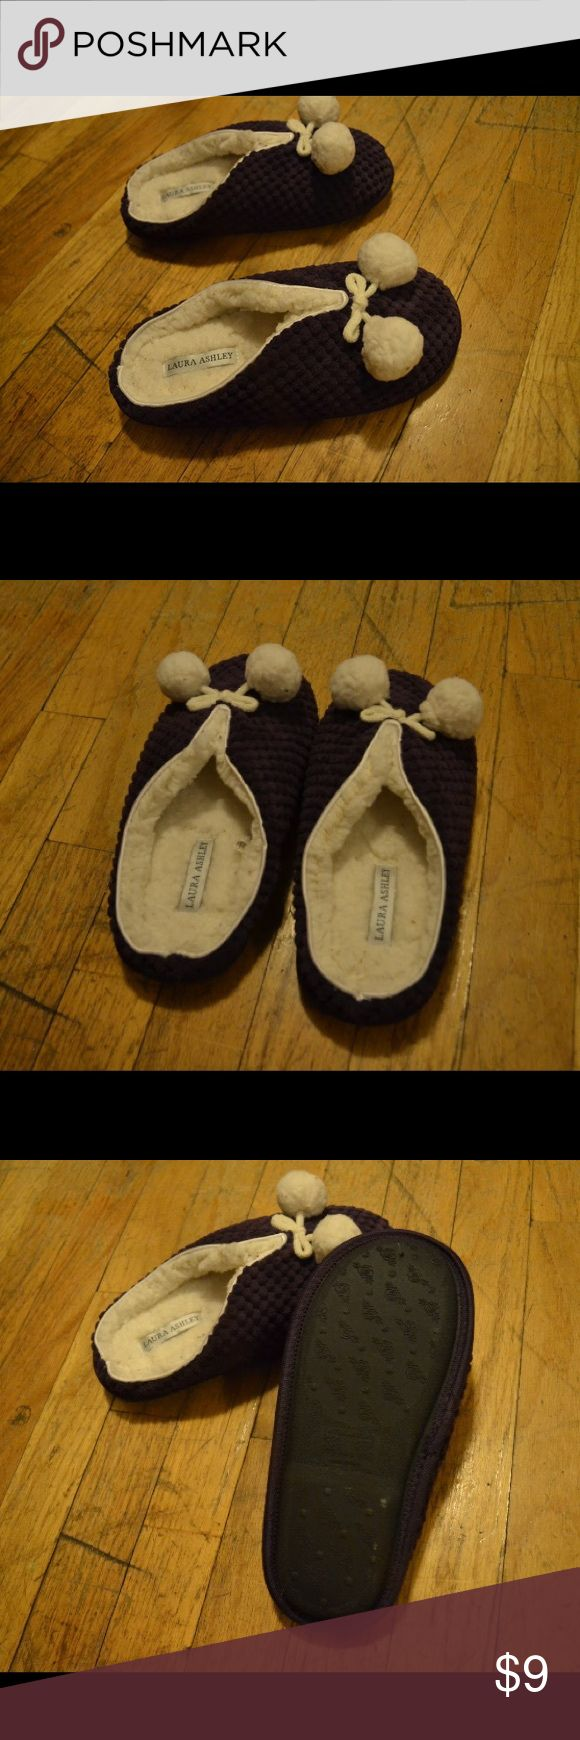 Mens Bedroom Slippers Made In Usa 17 Best Ideas About Bedroom Slippers On Pinterest Sewing